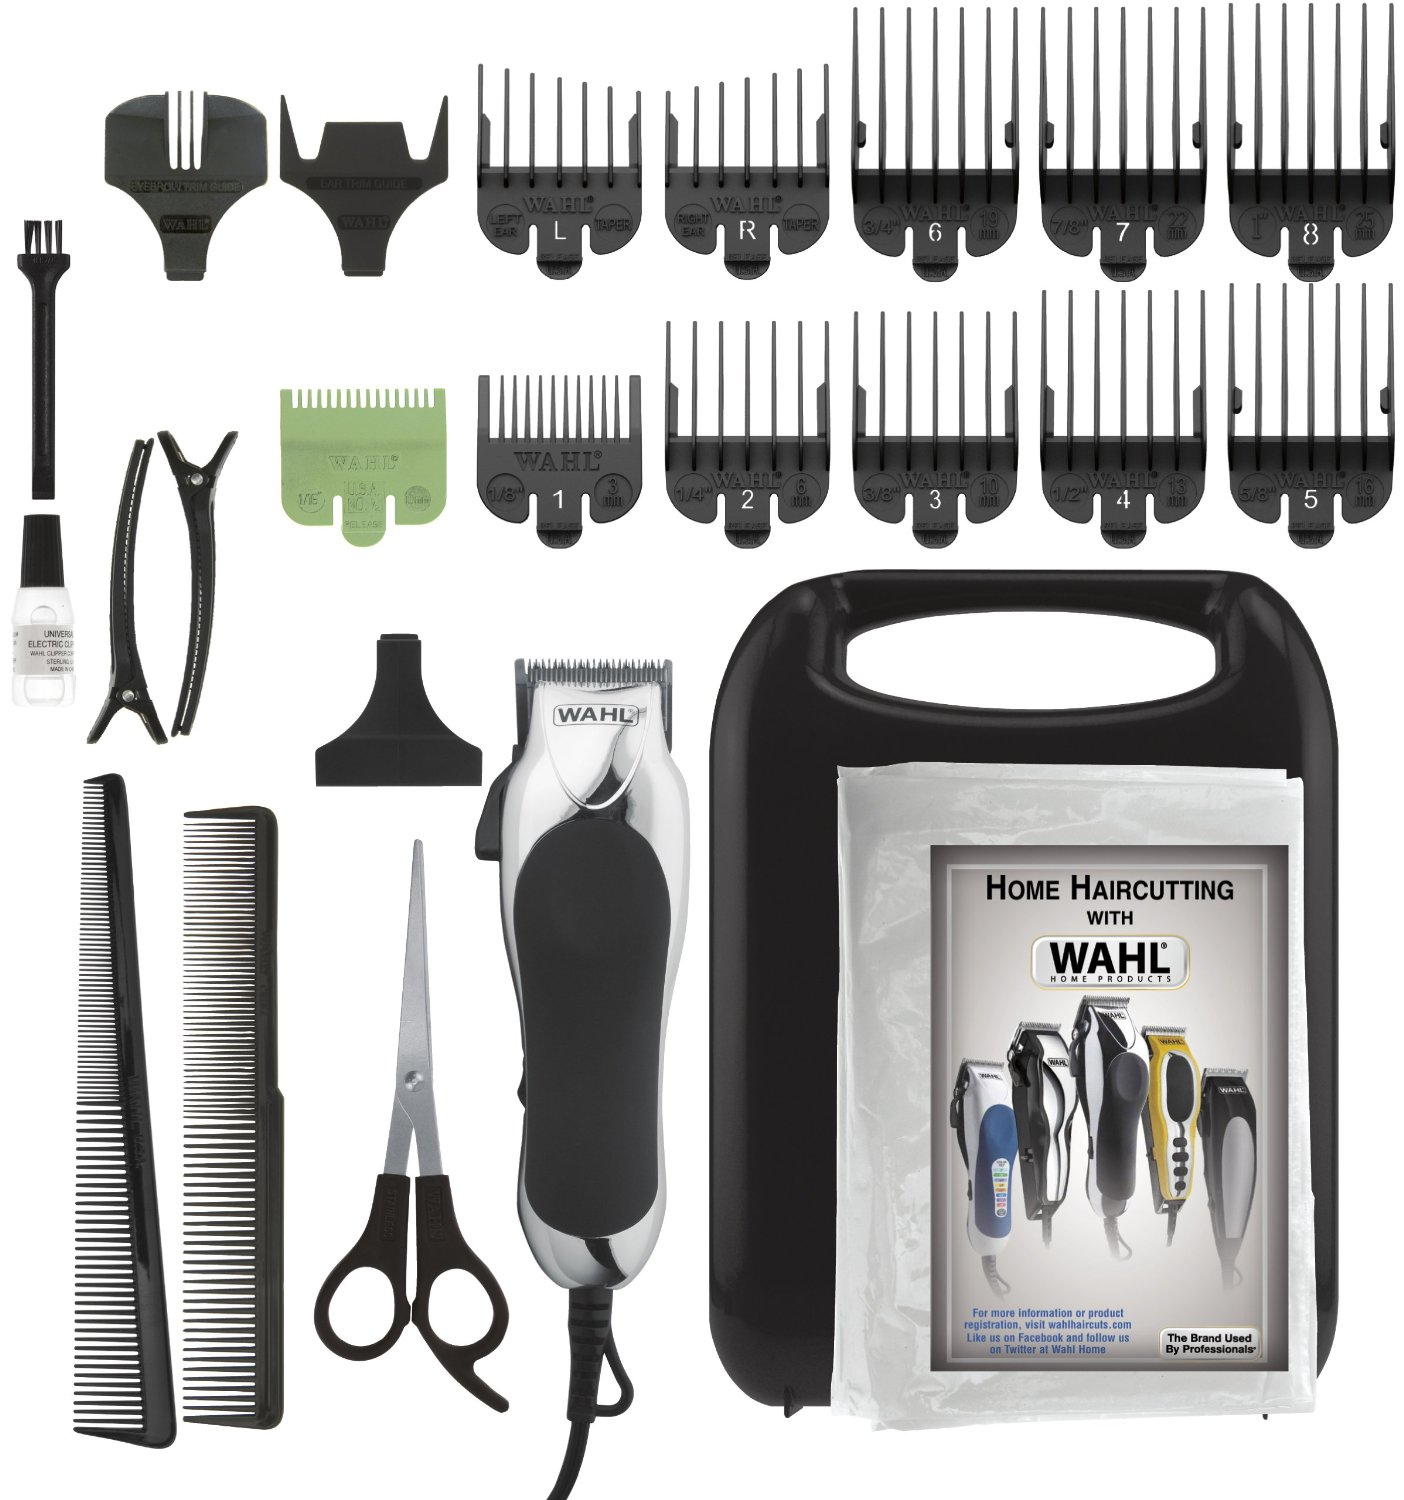 Save $3 on Wahl Soft Touch Chrome Pro Haircut Kit + Free Shipping